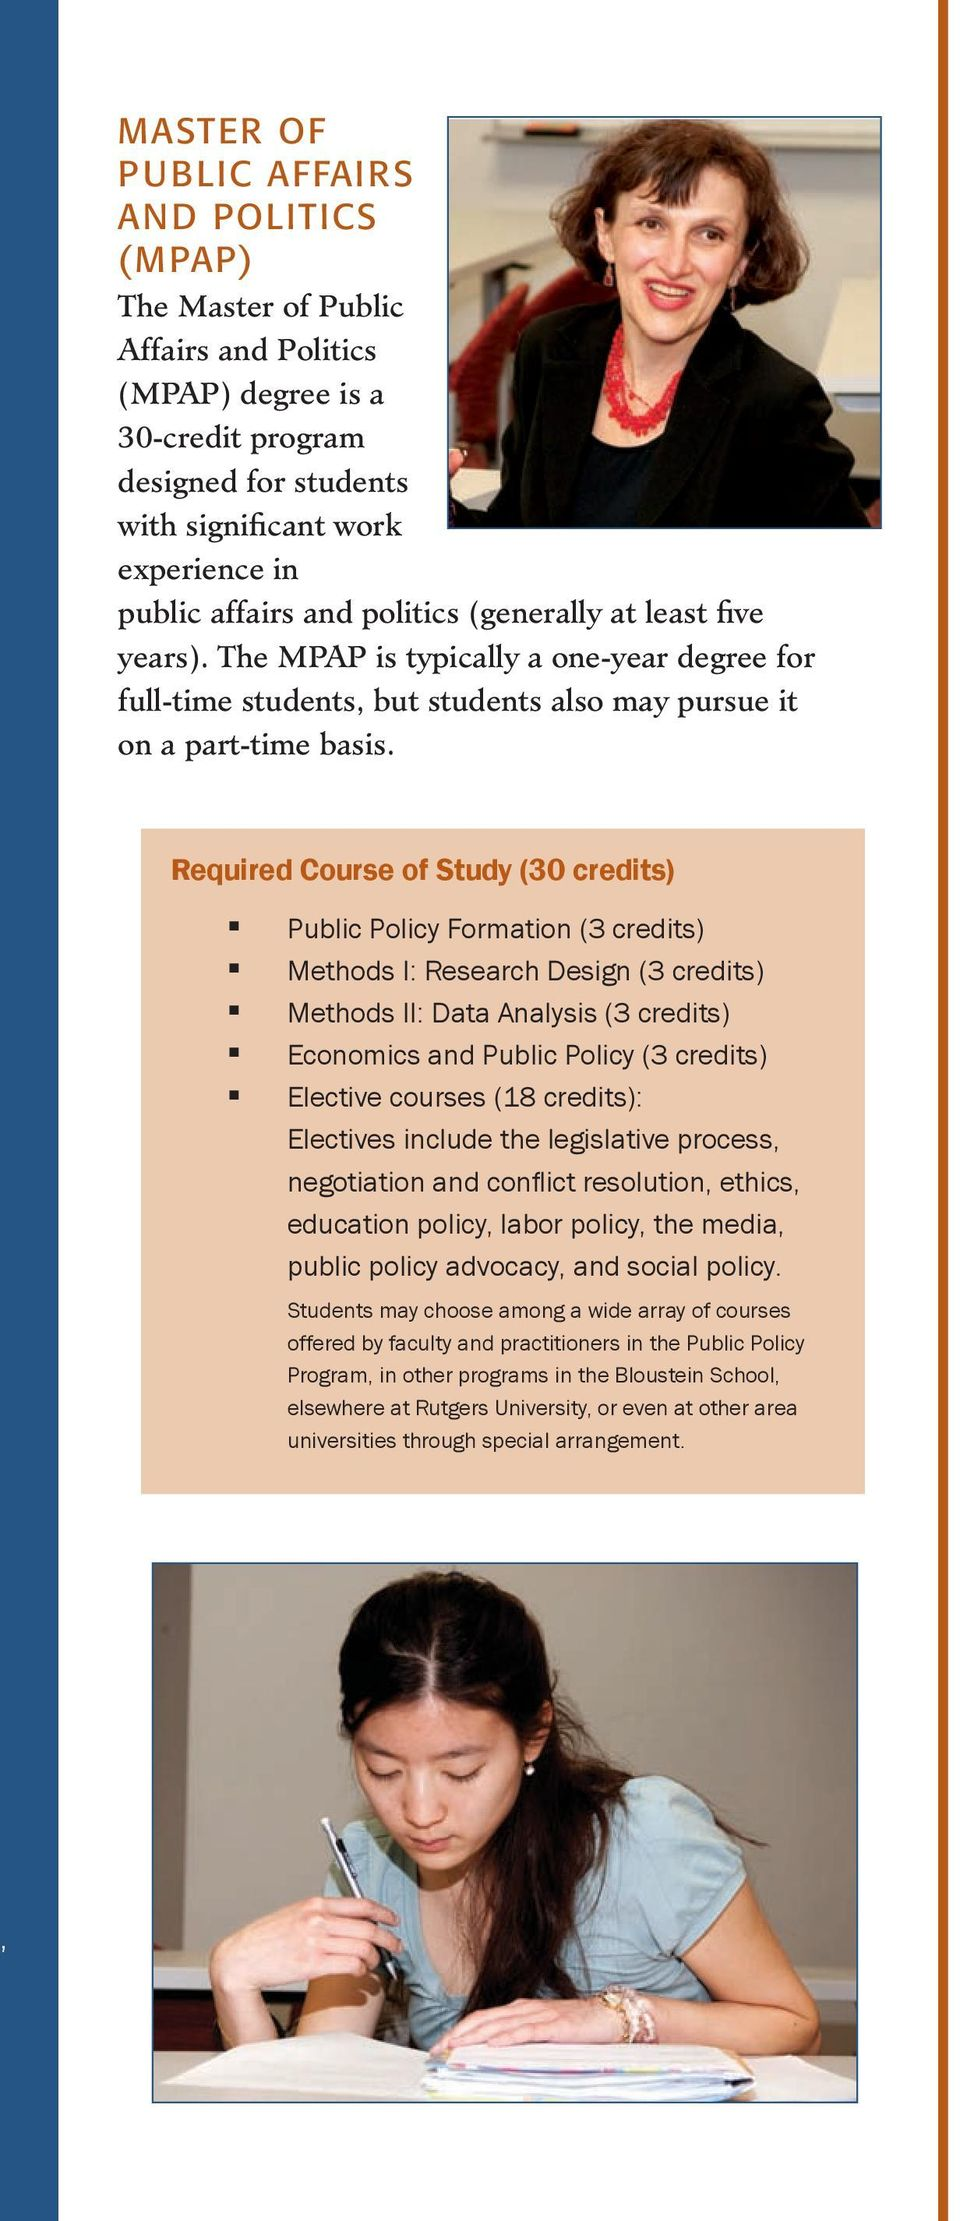 Required Course of Study (30 credits) Public Policy Formatio (3 credits) Methods I: Research Desig (3 credits) Methods II: Data Aalysis (3 credits) Ecoomics ad Public Policy (3 credits) Elective